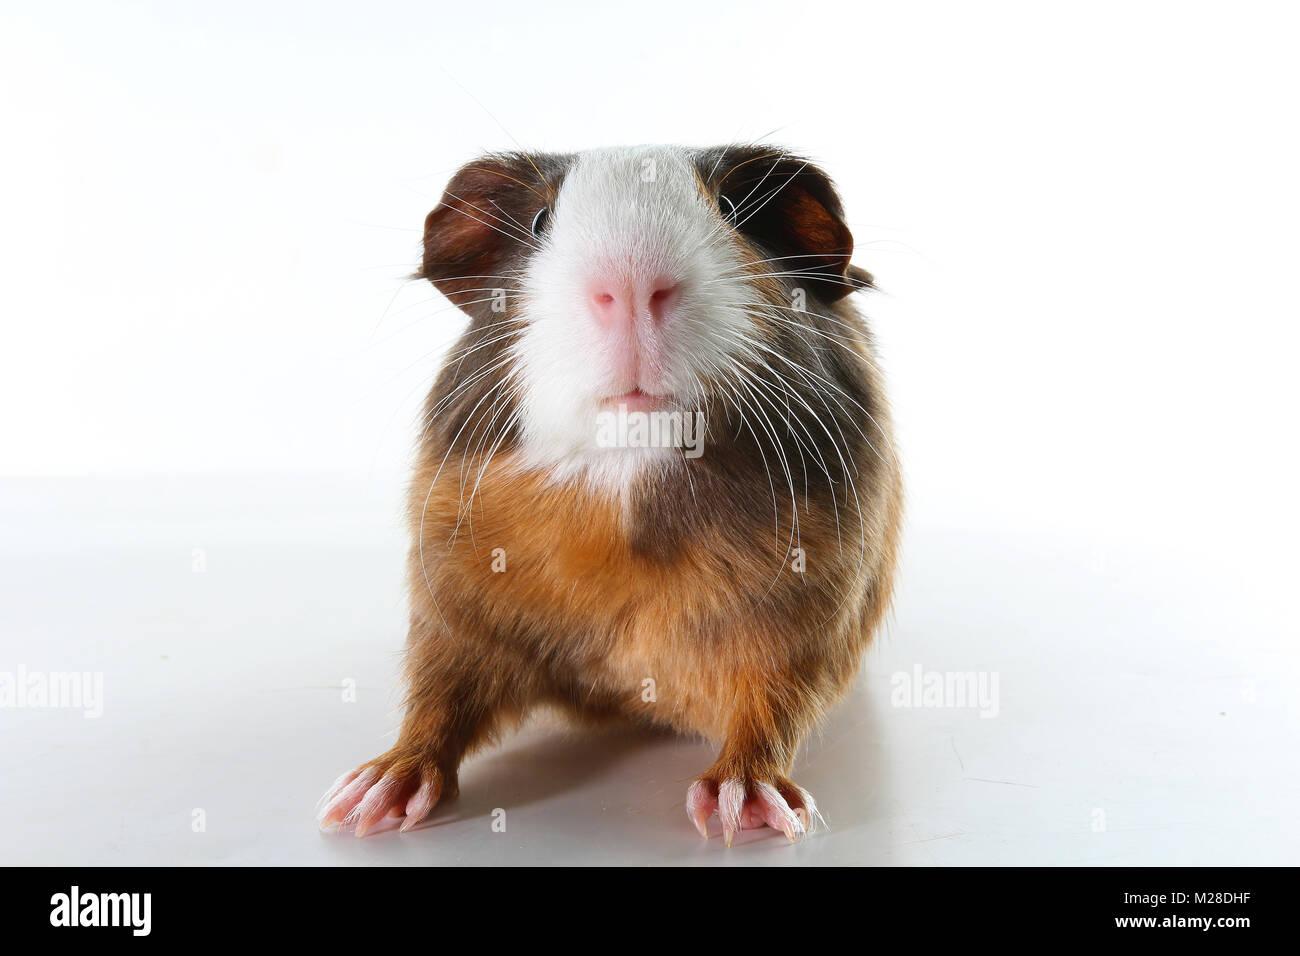 Guinea Pig Cut Out Stock Photos Amp Guinea Pig Cut Out Stock